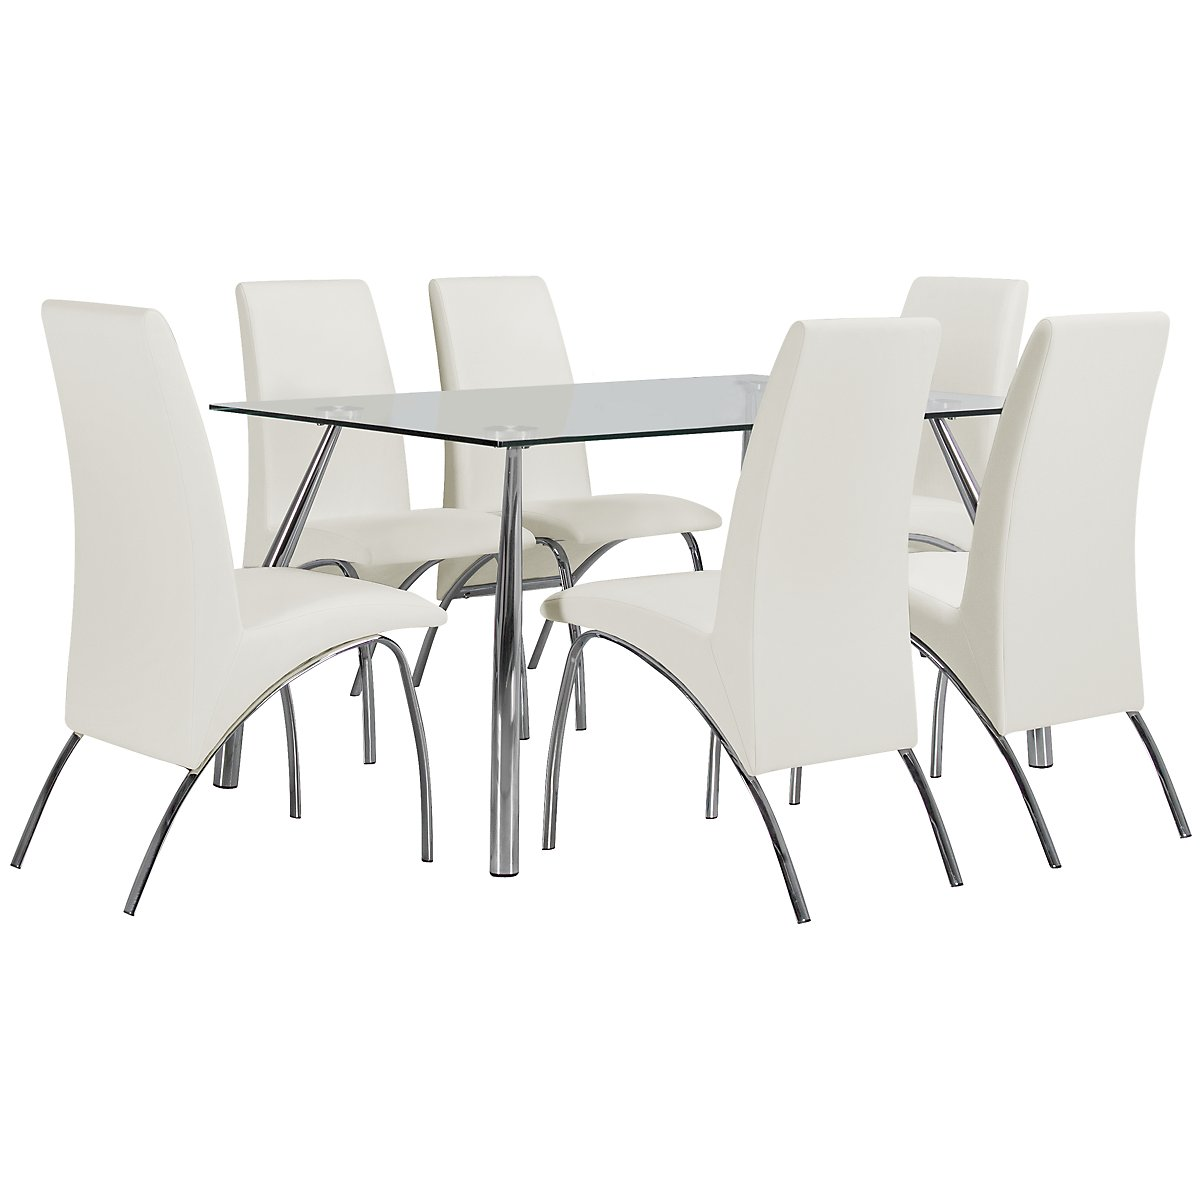 Mensa White Glass Table & 4 Upholstered Chairs